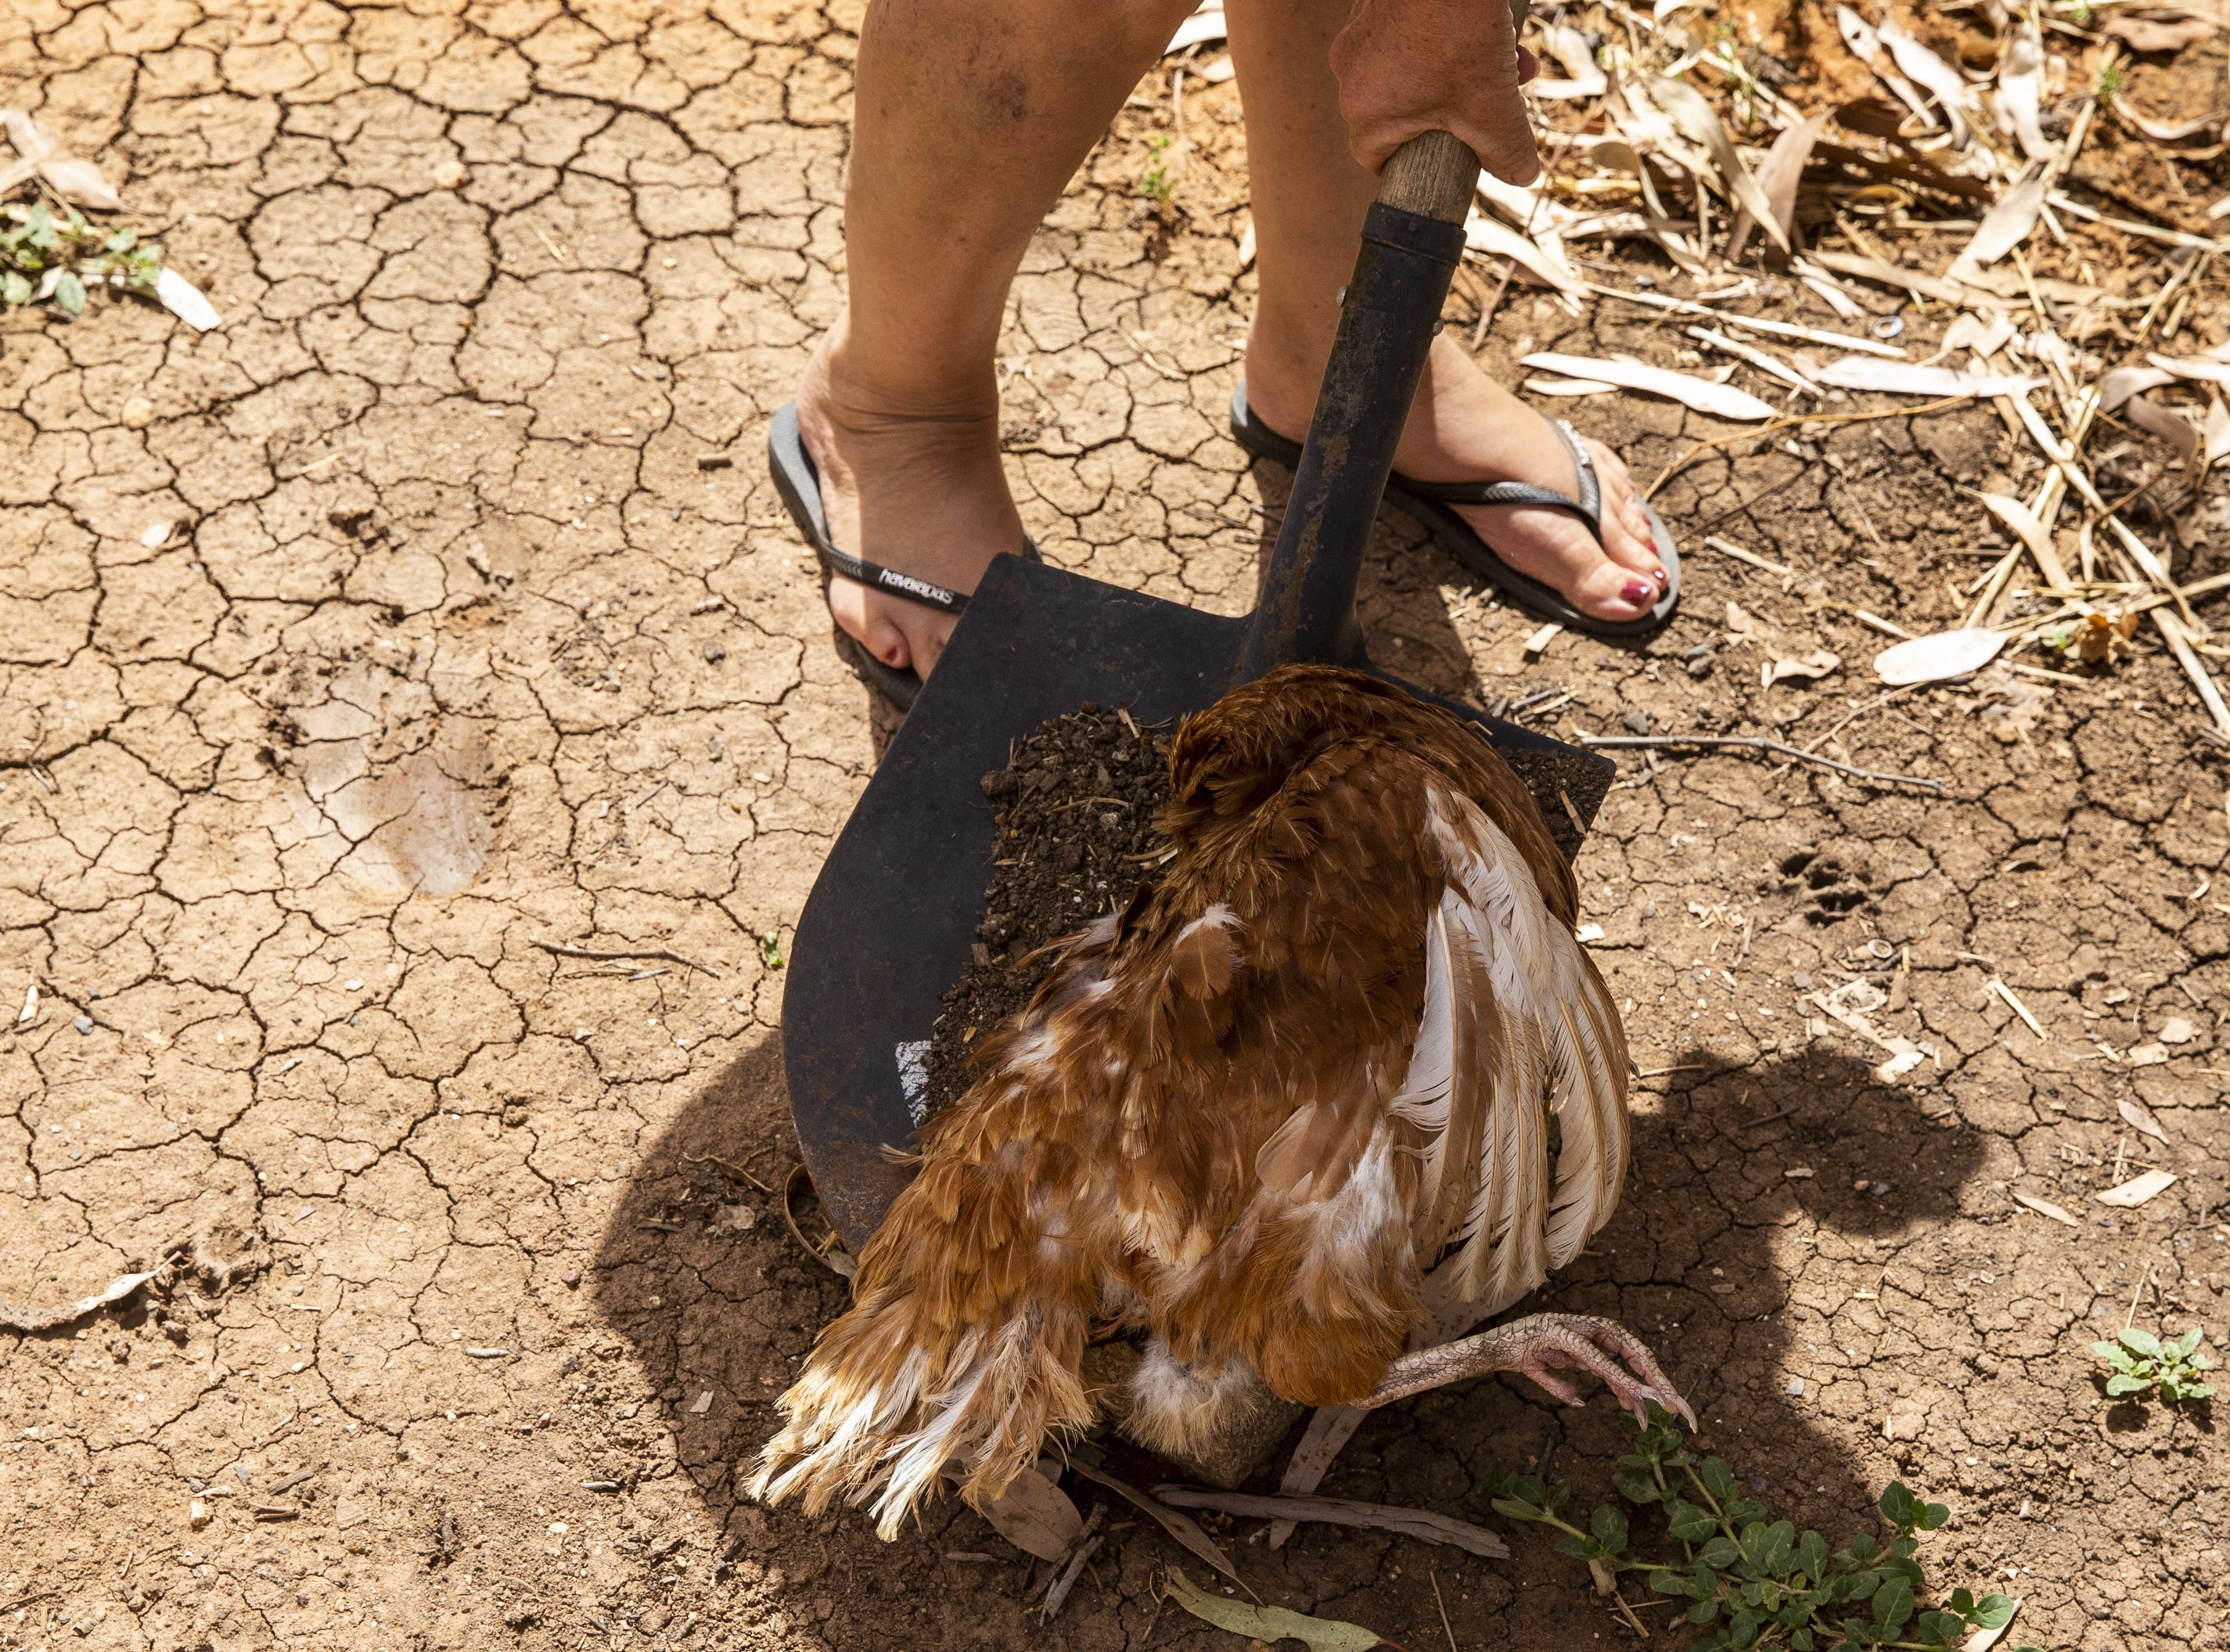 A dead chicken is found by Shindy Inn's owner Kath Barnes in 116.6 degree heat on January 17, 2019 in Louth, Australia. Local communities in the Darling River area are facing drought and clean water shortages as debate grows over the alleged mismanagement of the Murray-Darling Basin.